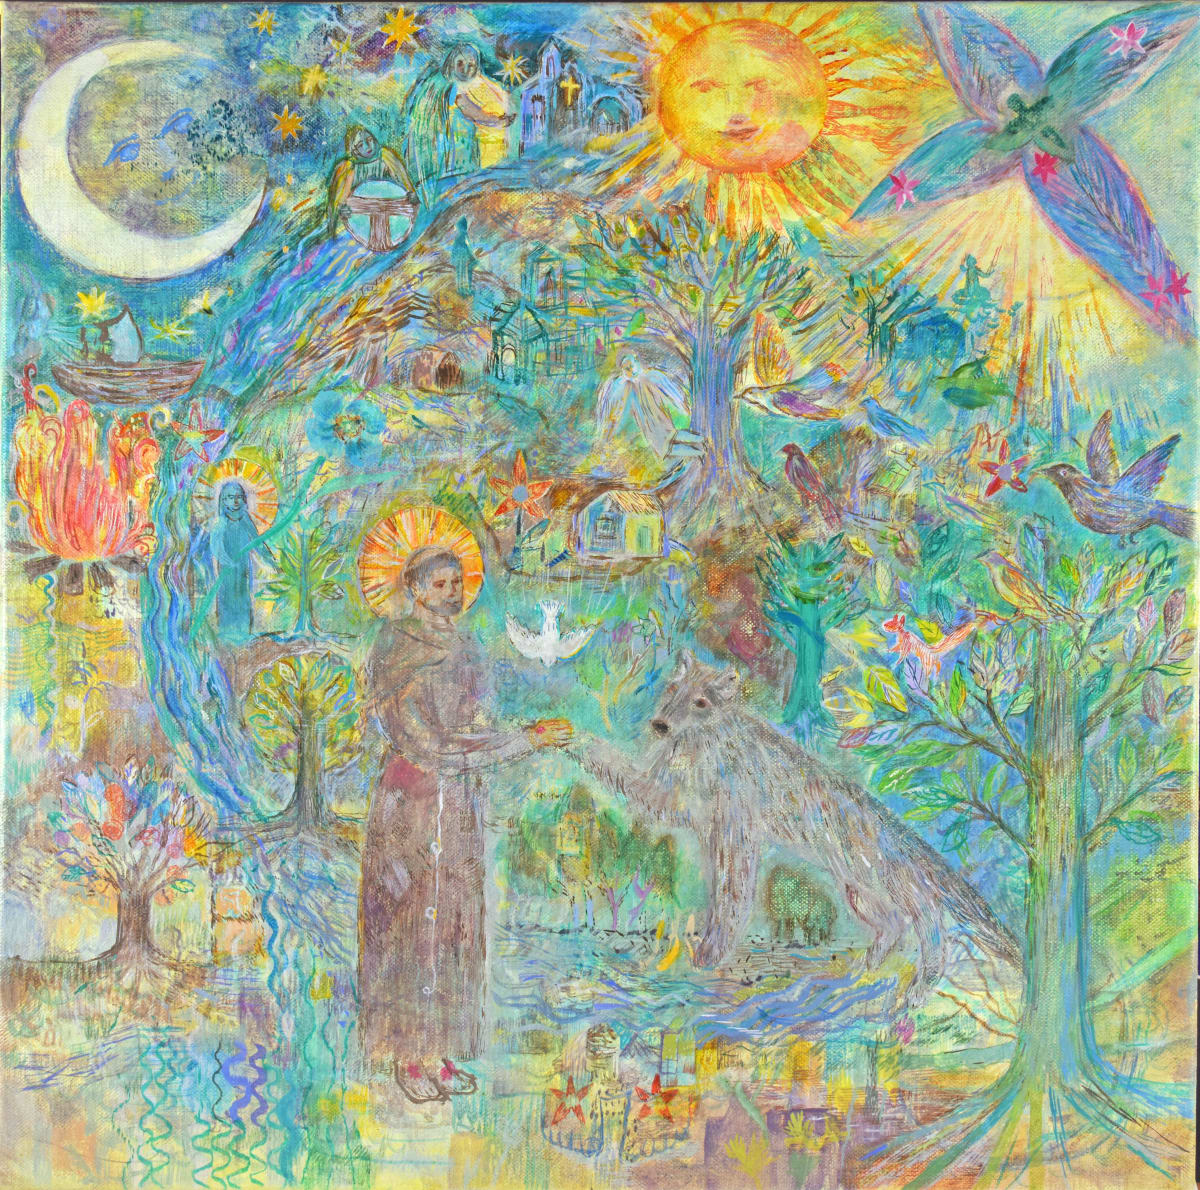 Saint Francis in the World by Andrea McLean